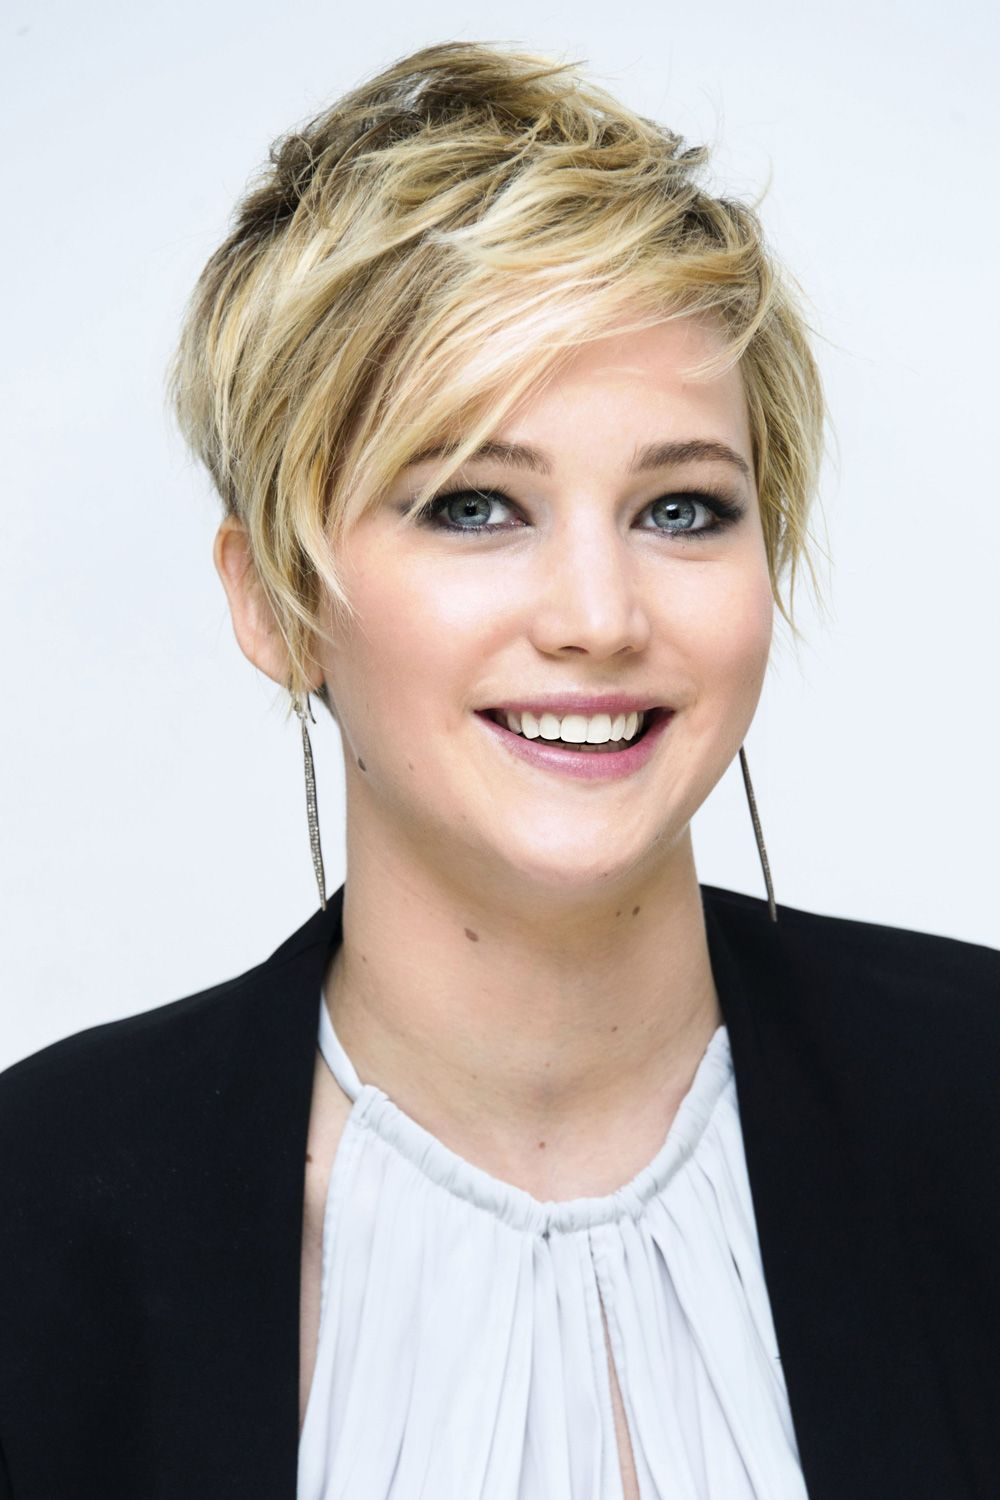 35 awesome short hairstyles for fine hair | thin hair, short